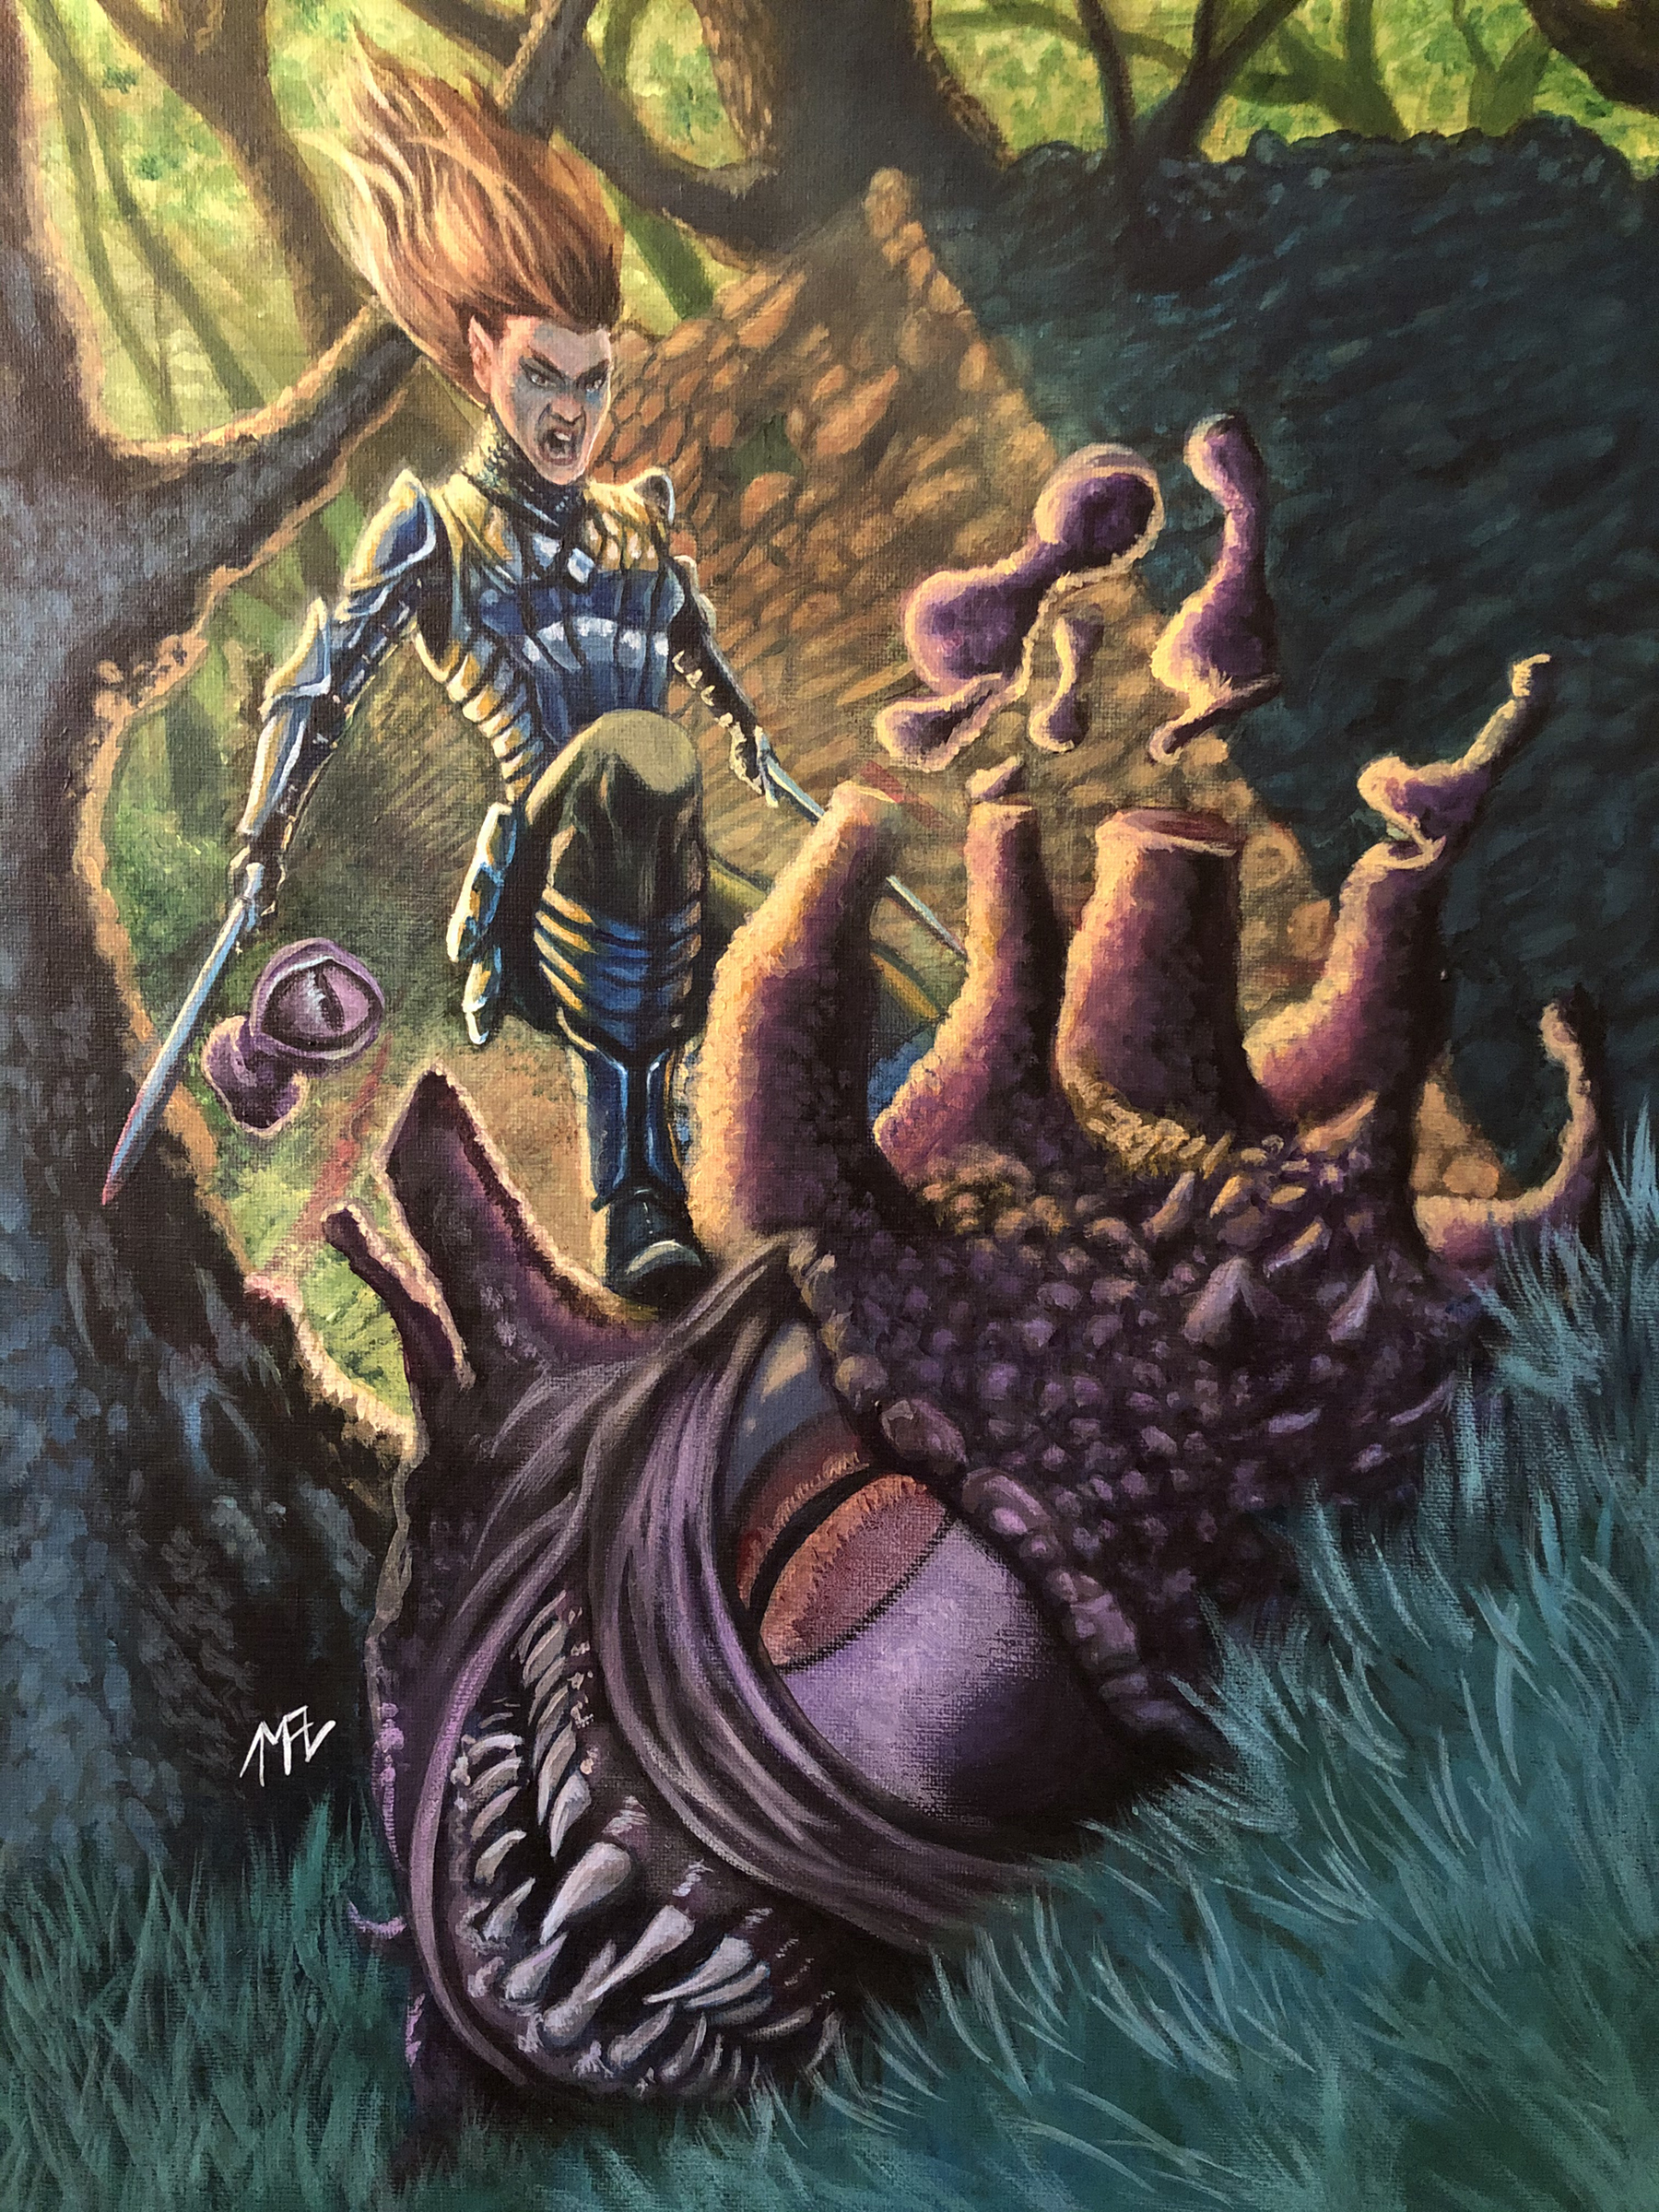 Fantasy acrylic painting of elf landing on a beholder severing many of its eye stalks while smashing it to the ground in a forest.